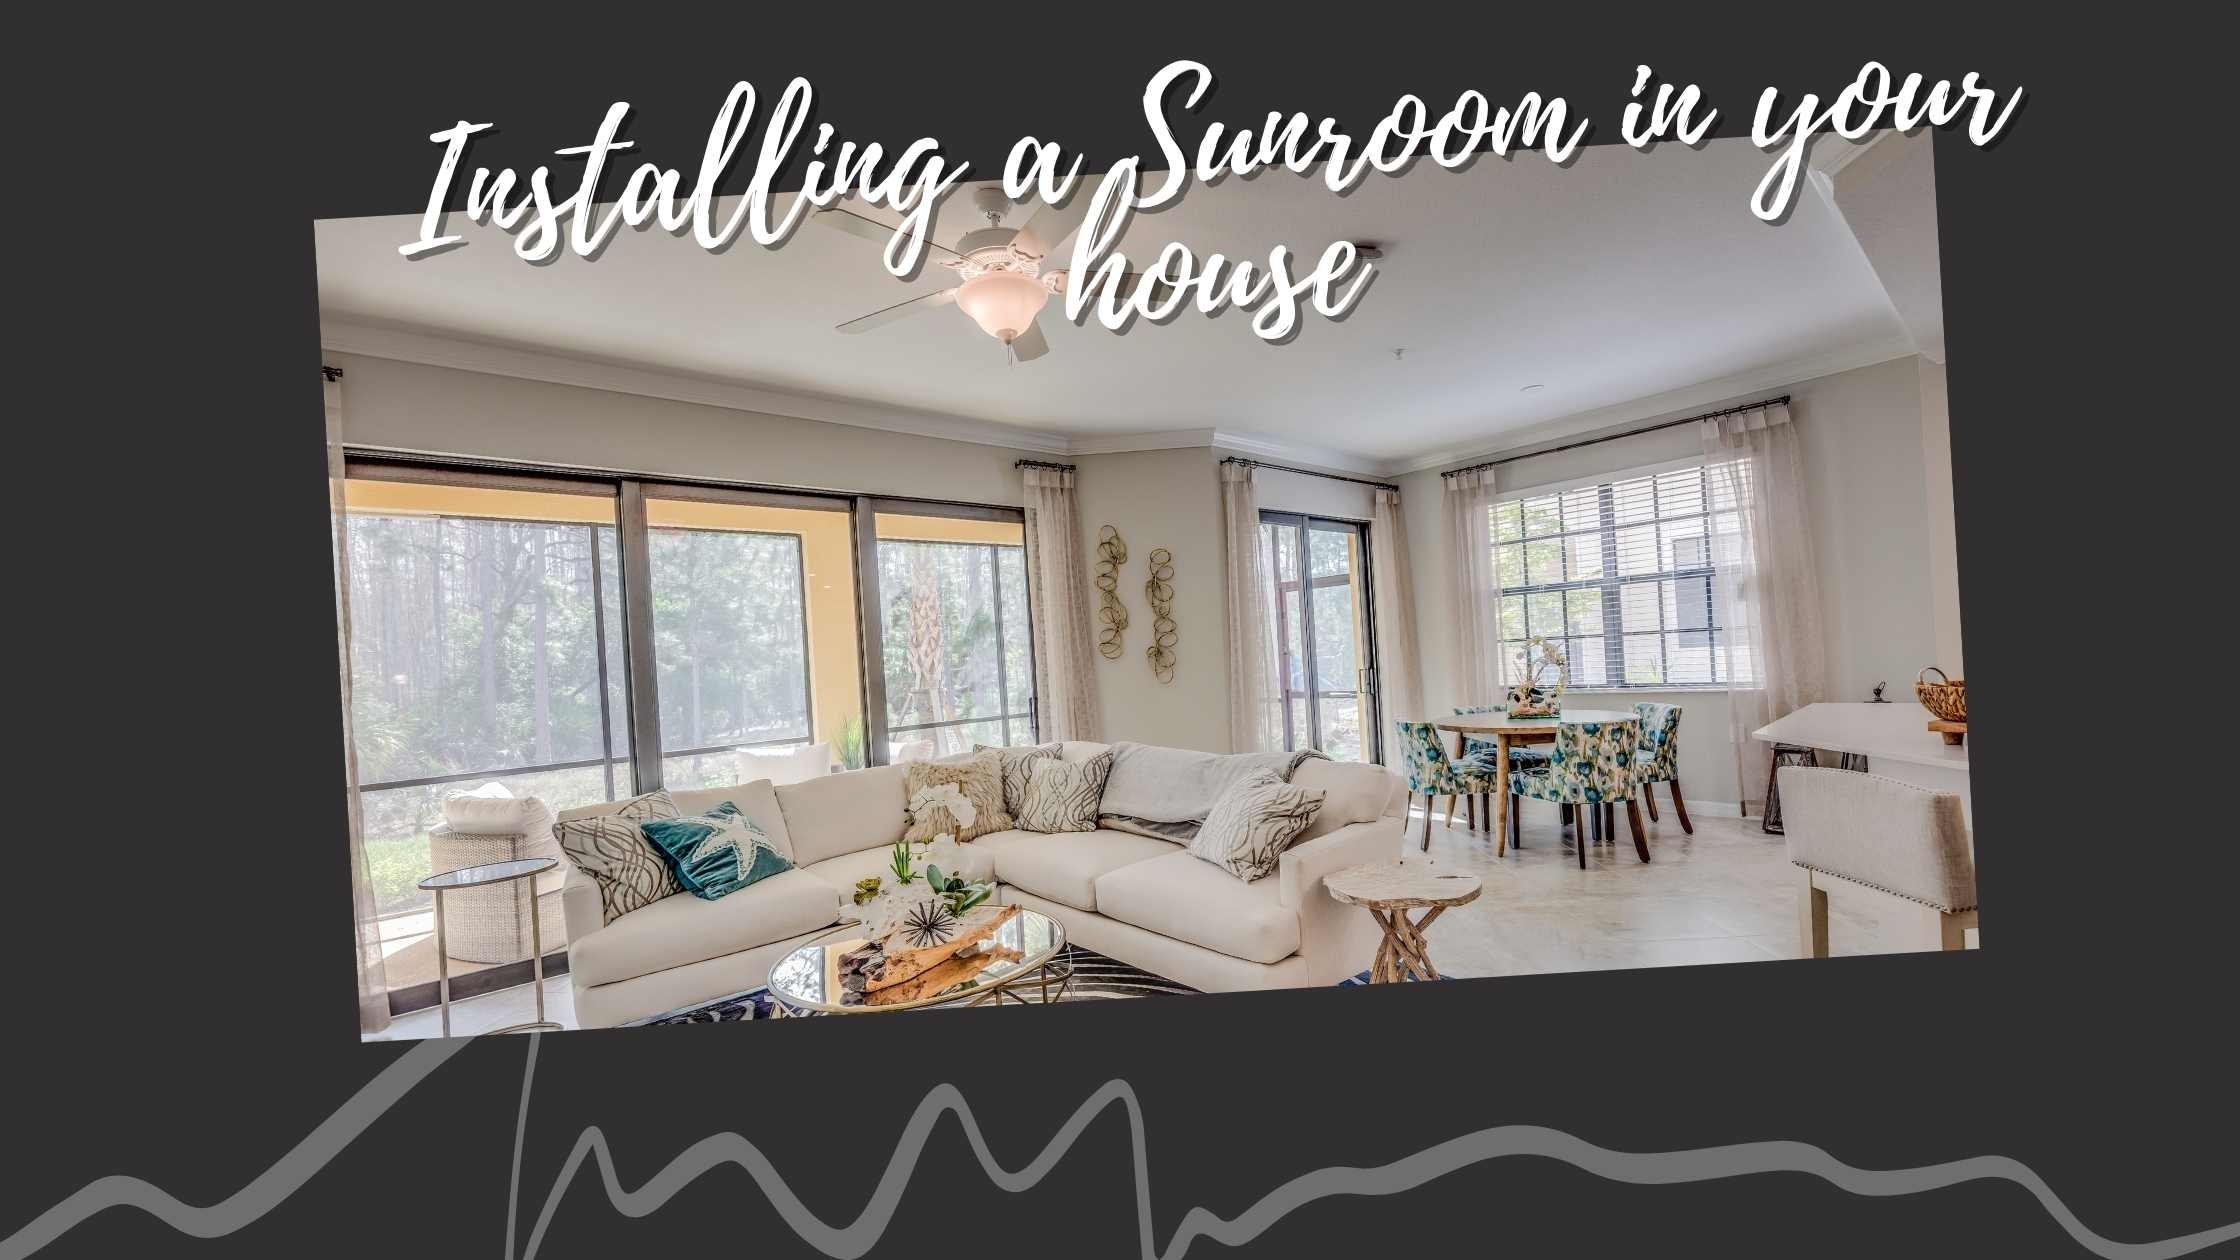 4 Steps to Know Before Installing a Sunroom in Your Home